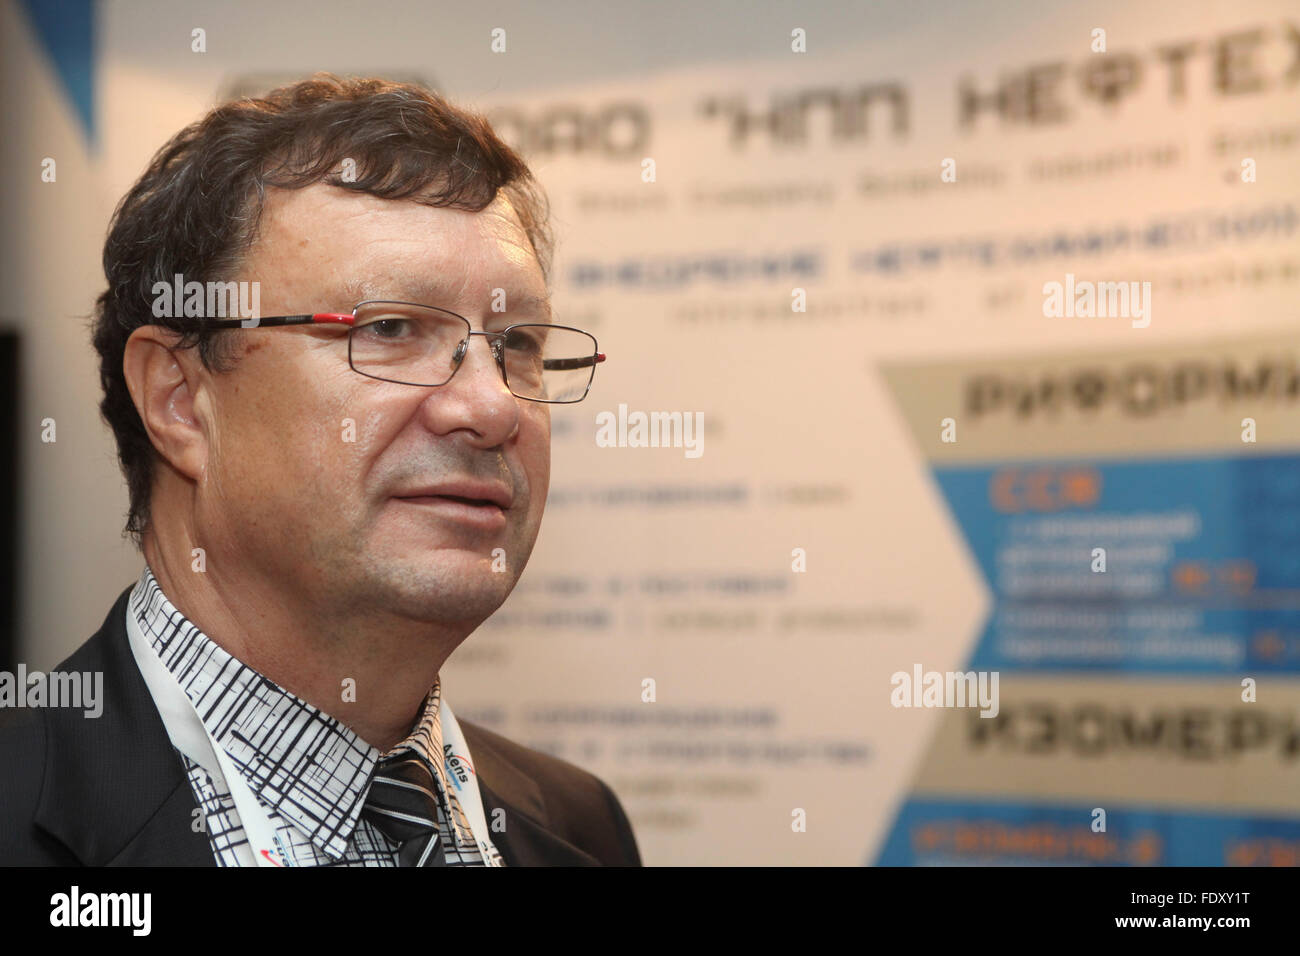 One of Russia's leading petrochemical engineers Dr Alexander Shakun pictured near boot of his company NPP Neftehim - Stock Image